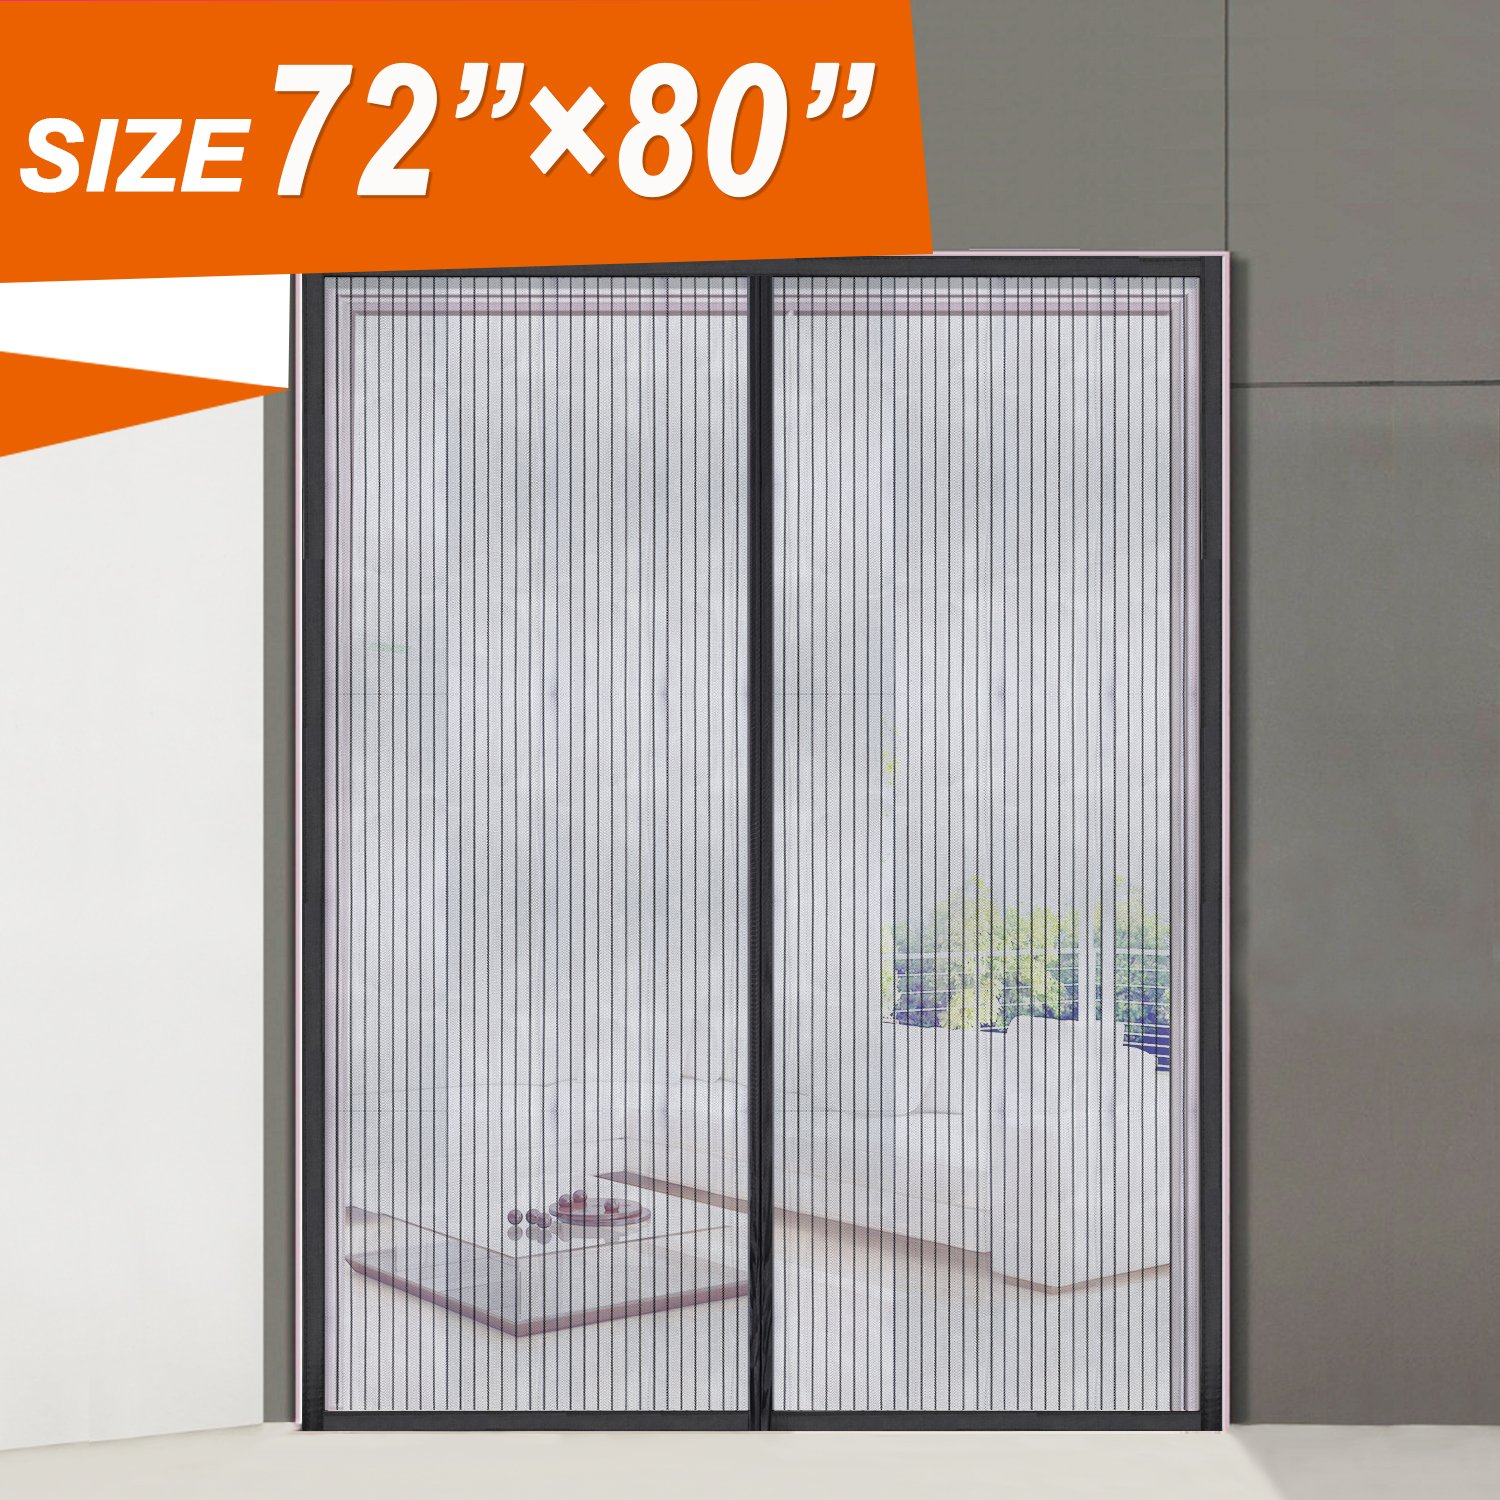 Magnetic Screen Door 72, Wide Mega French Door Mesh 72 X 80 Fit Doors Size Up to 70''W X 79''H Max with Full Frame Magic Sticker Large Magnet Double Door Curtain Slab Doors Keep Fly Mosquito Out by MAGZO